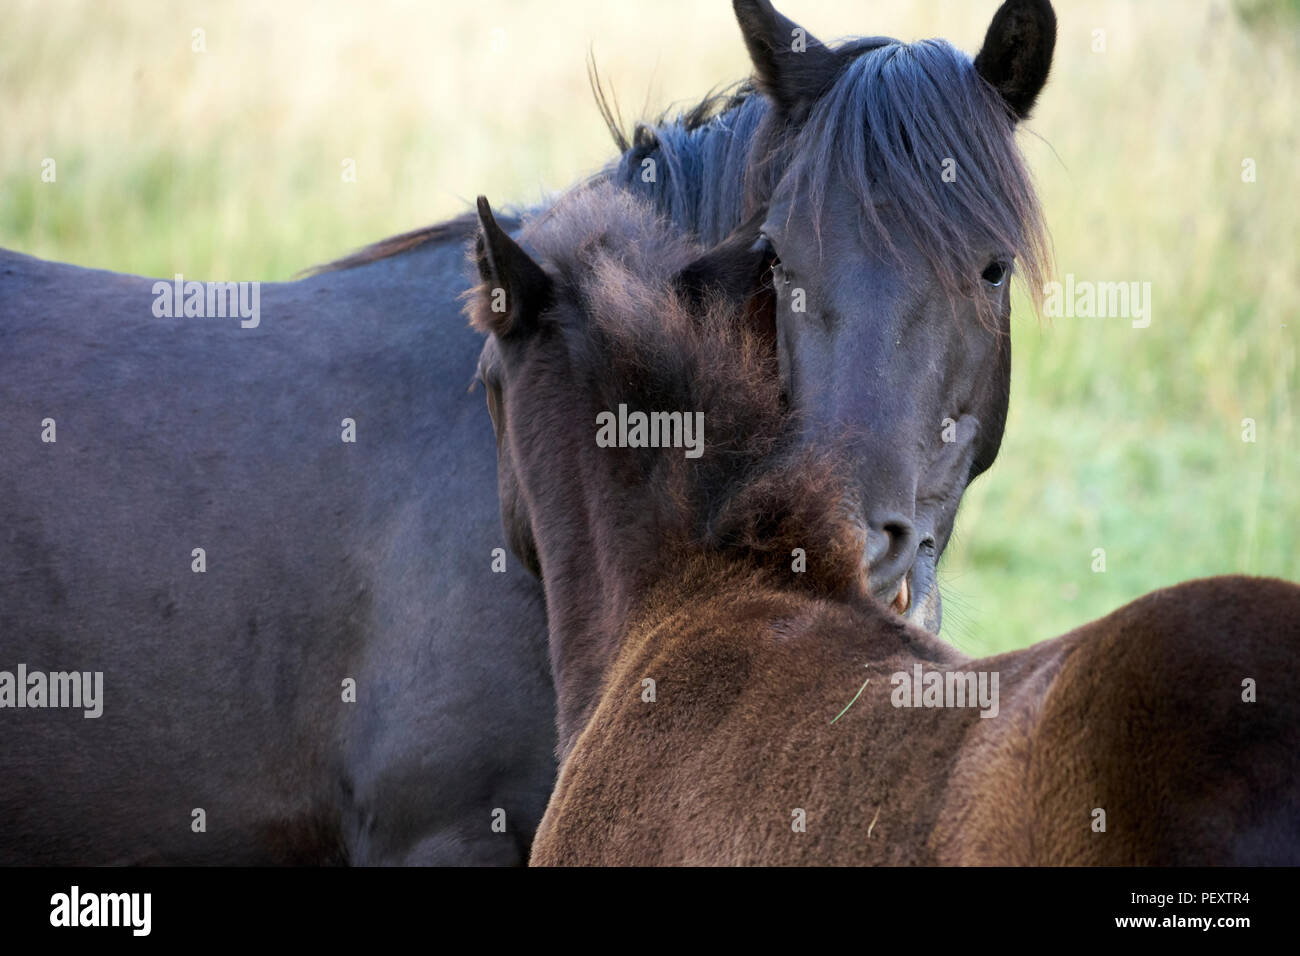 Pottoka, Europe's wildest horses, reintroduction for ecological restoration and rewilding in northern Spain - Stock Image